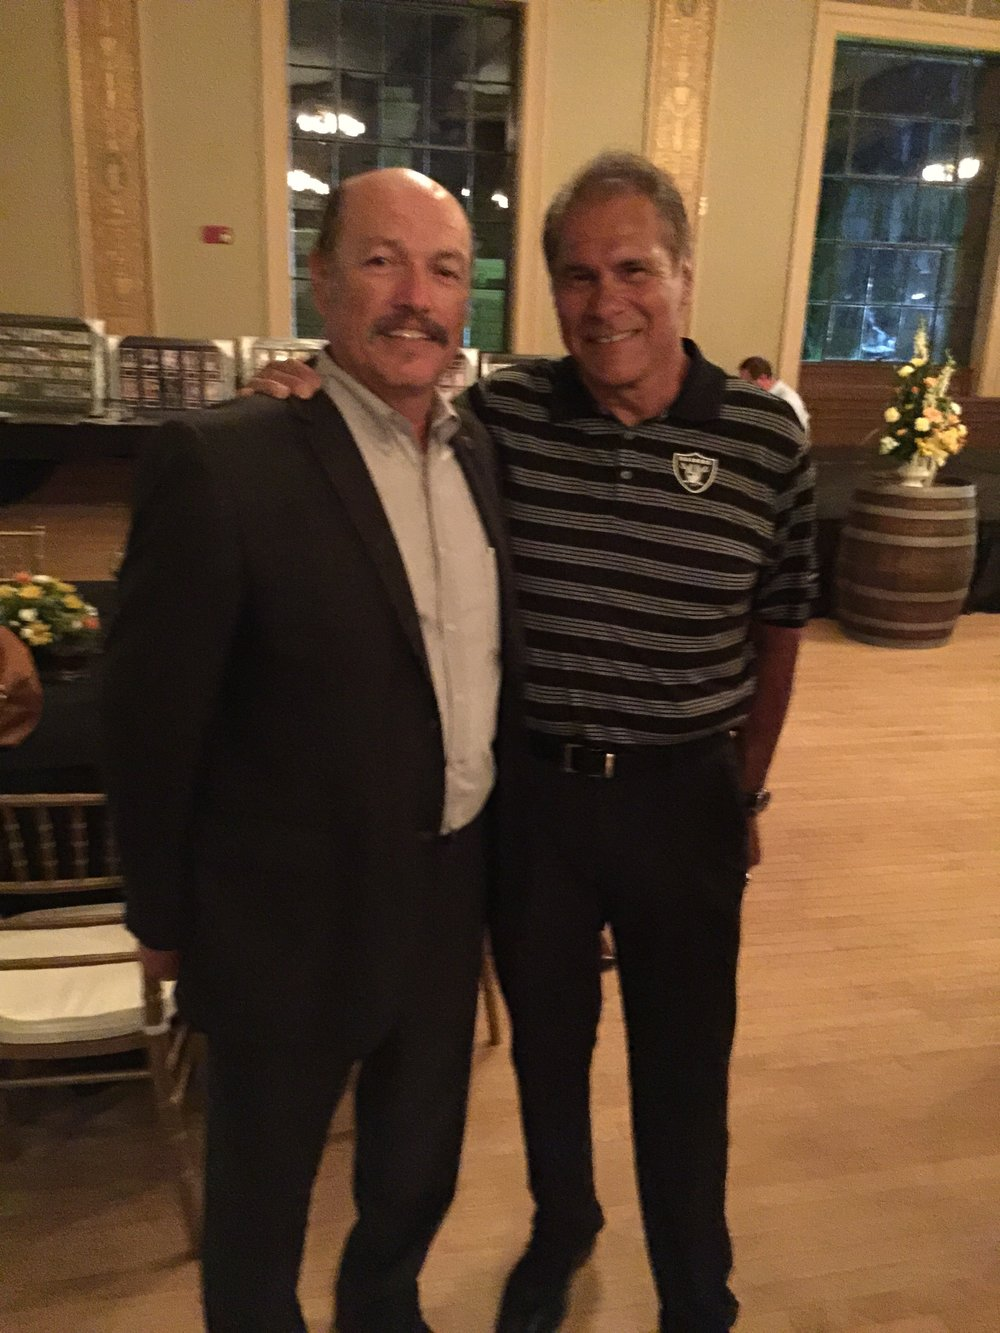 Tony with Super Bowl champion quarterback Jim Plunkett